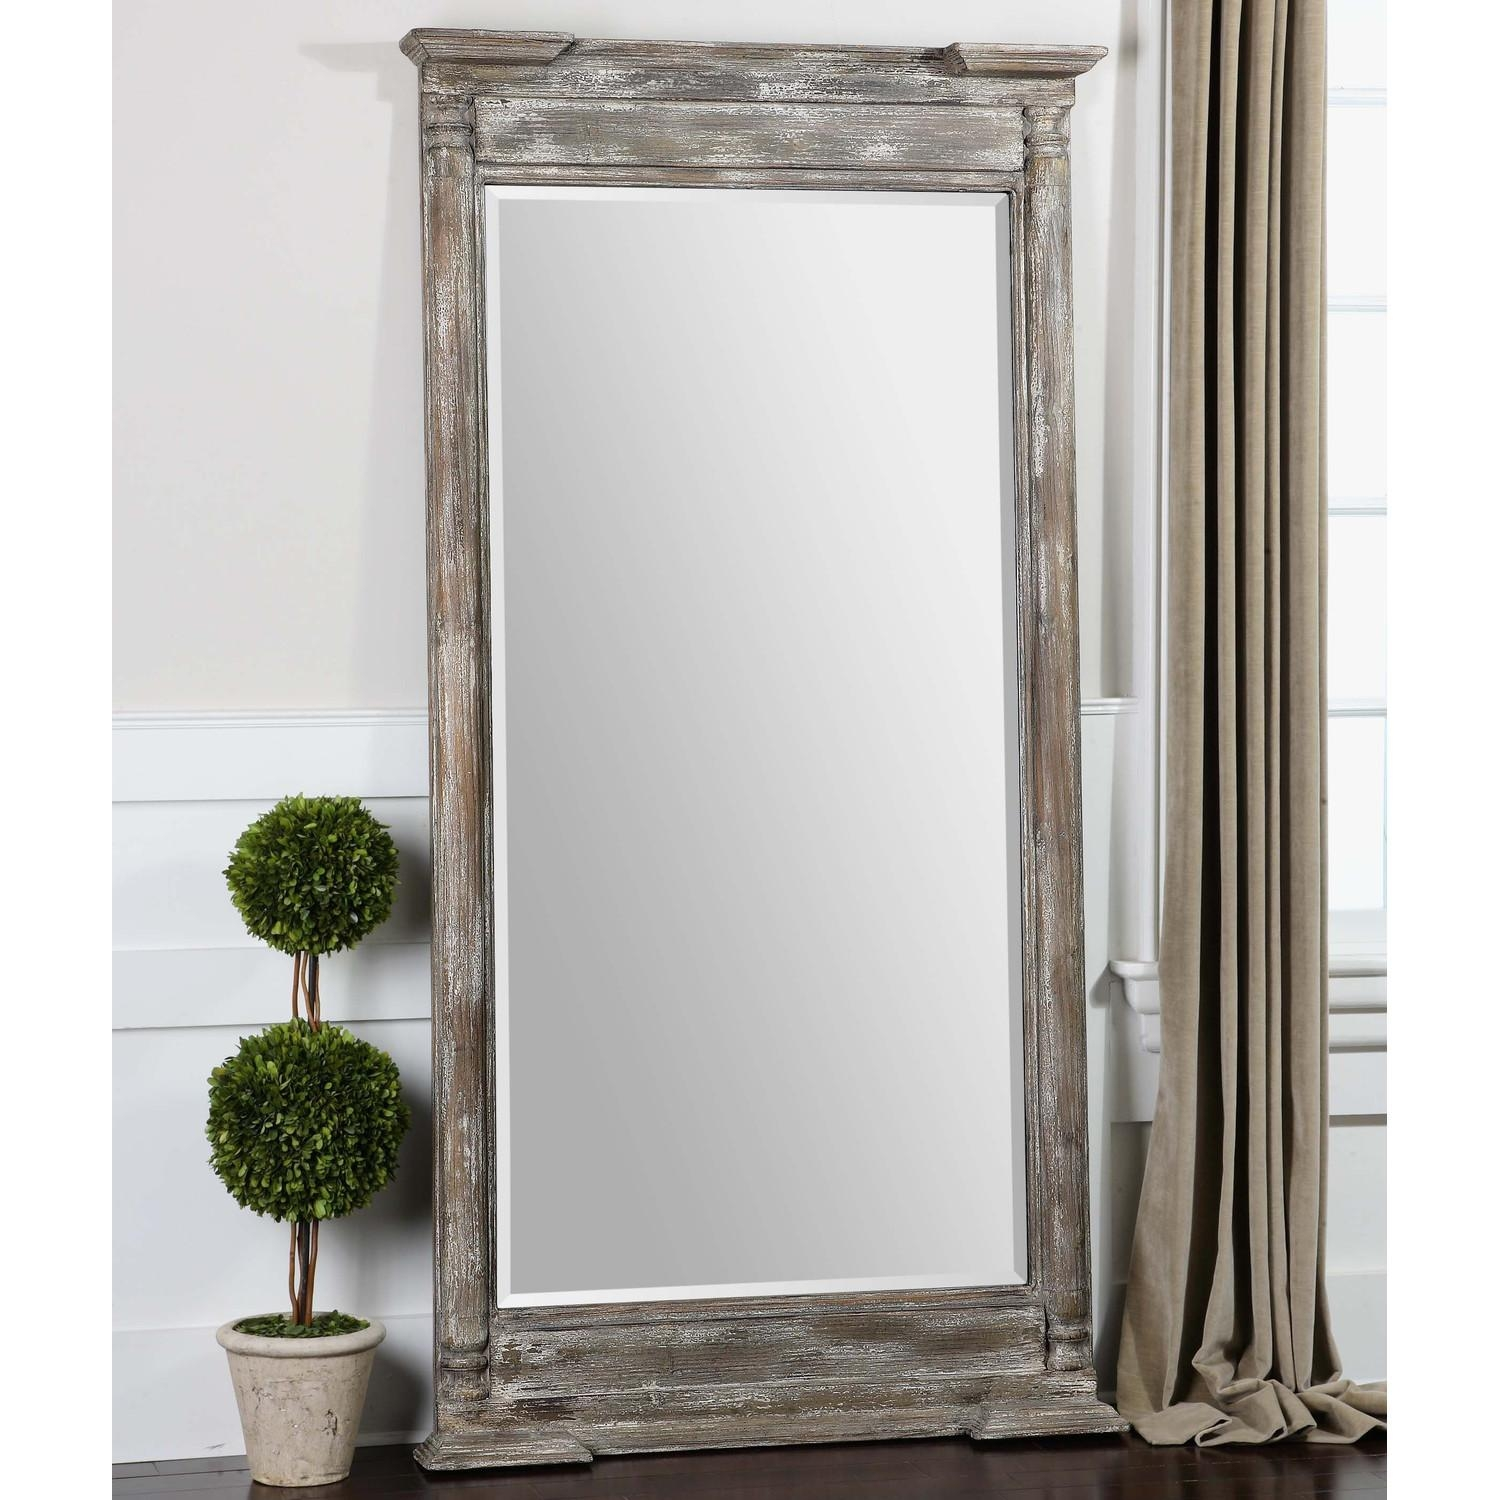 Flooring : Incredible Leaningr Mirror Picture Design With Jewelry Within Victorian Full Length Mirror (Image 14 of 20)